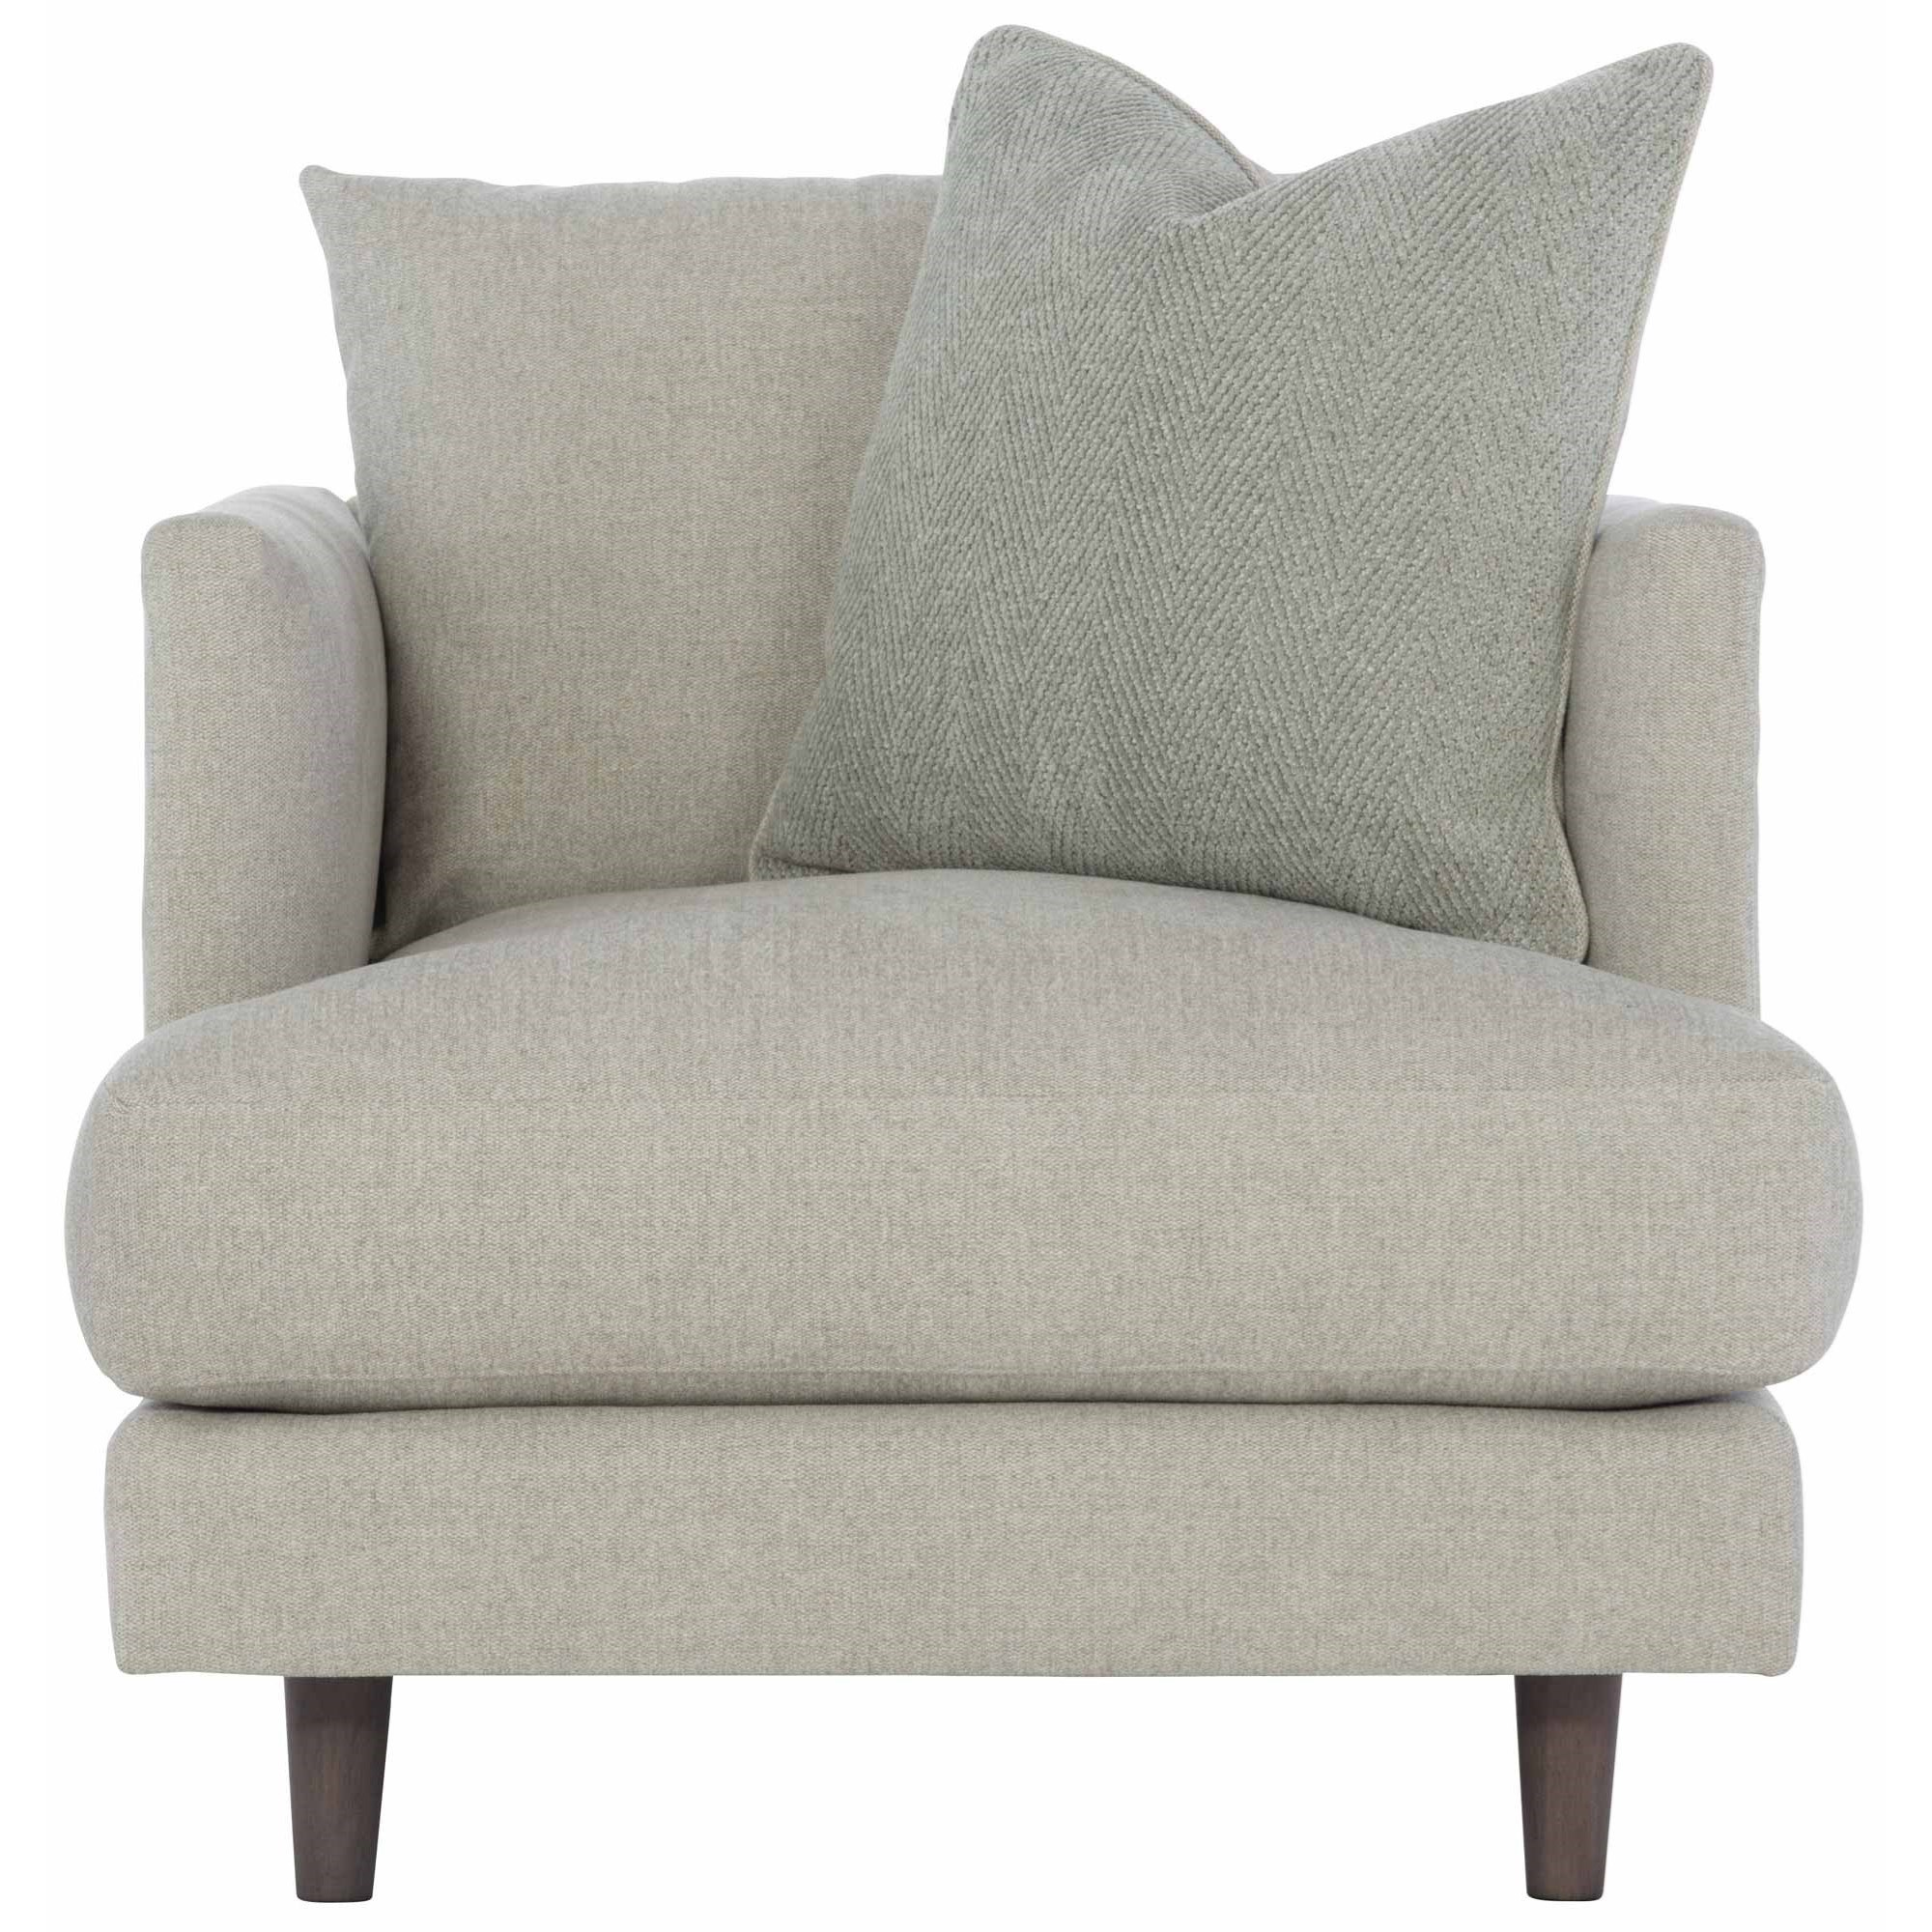 Picture of: Bernhardt Colette P7422 Mid Century Modern Chair With Down Seat Cushion And Throw Pillow Esprit Decor Home Furnishings Upholstered Chairs